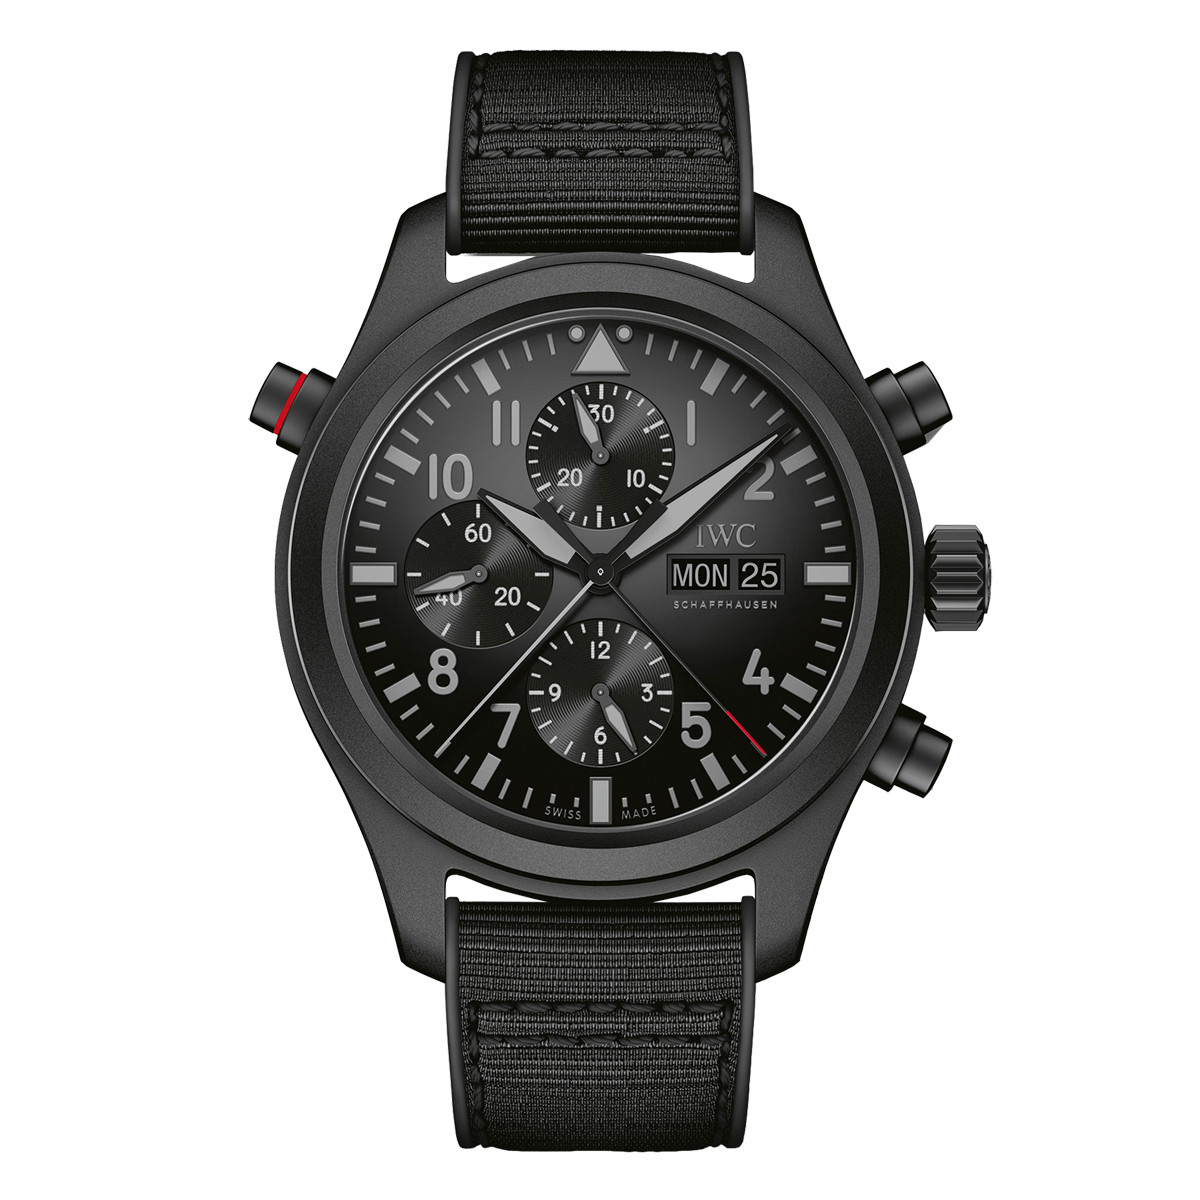 Pilot's Watch Double Chronograph TOP GUN (IW371815)